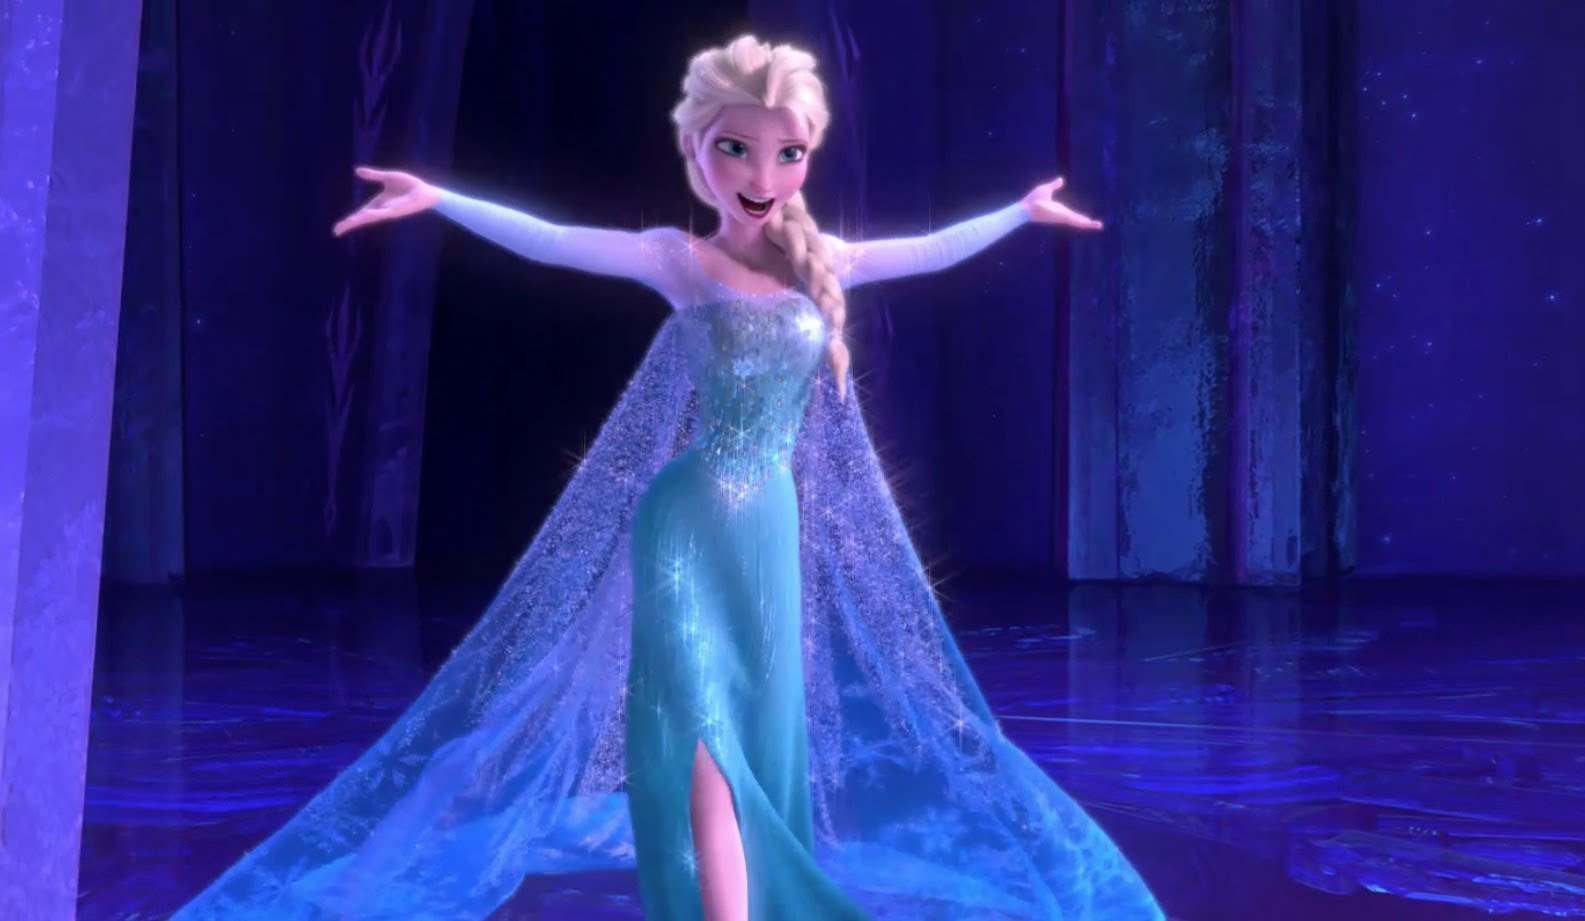 「奧斯卡最佳原創歌曲:Let It Go」- Let It Go from Disney's FROZEN by Idina Menzel